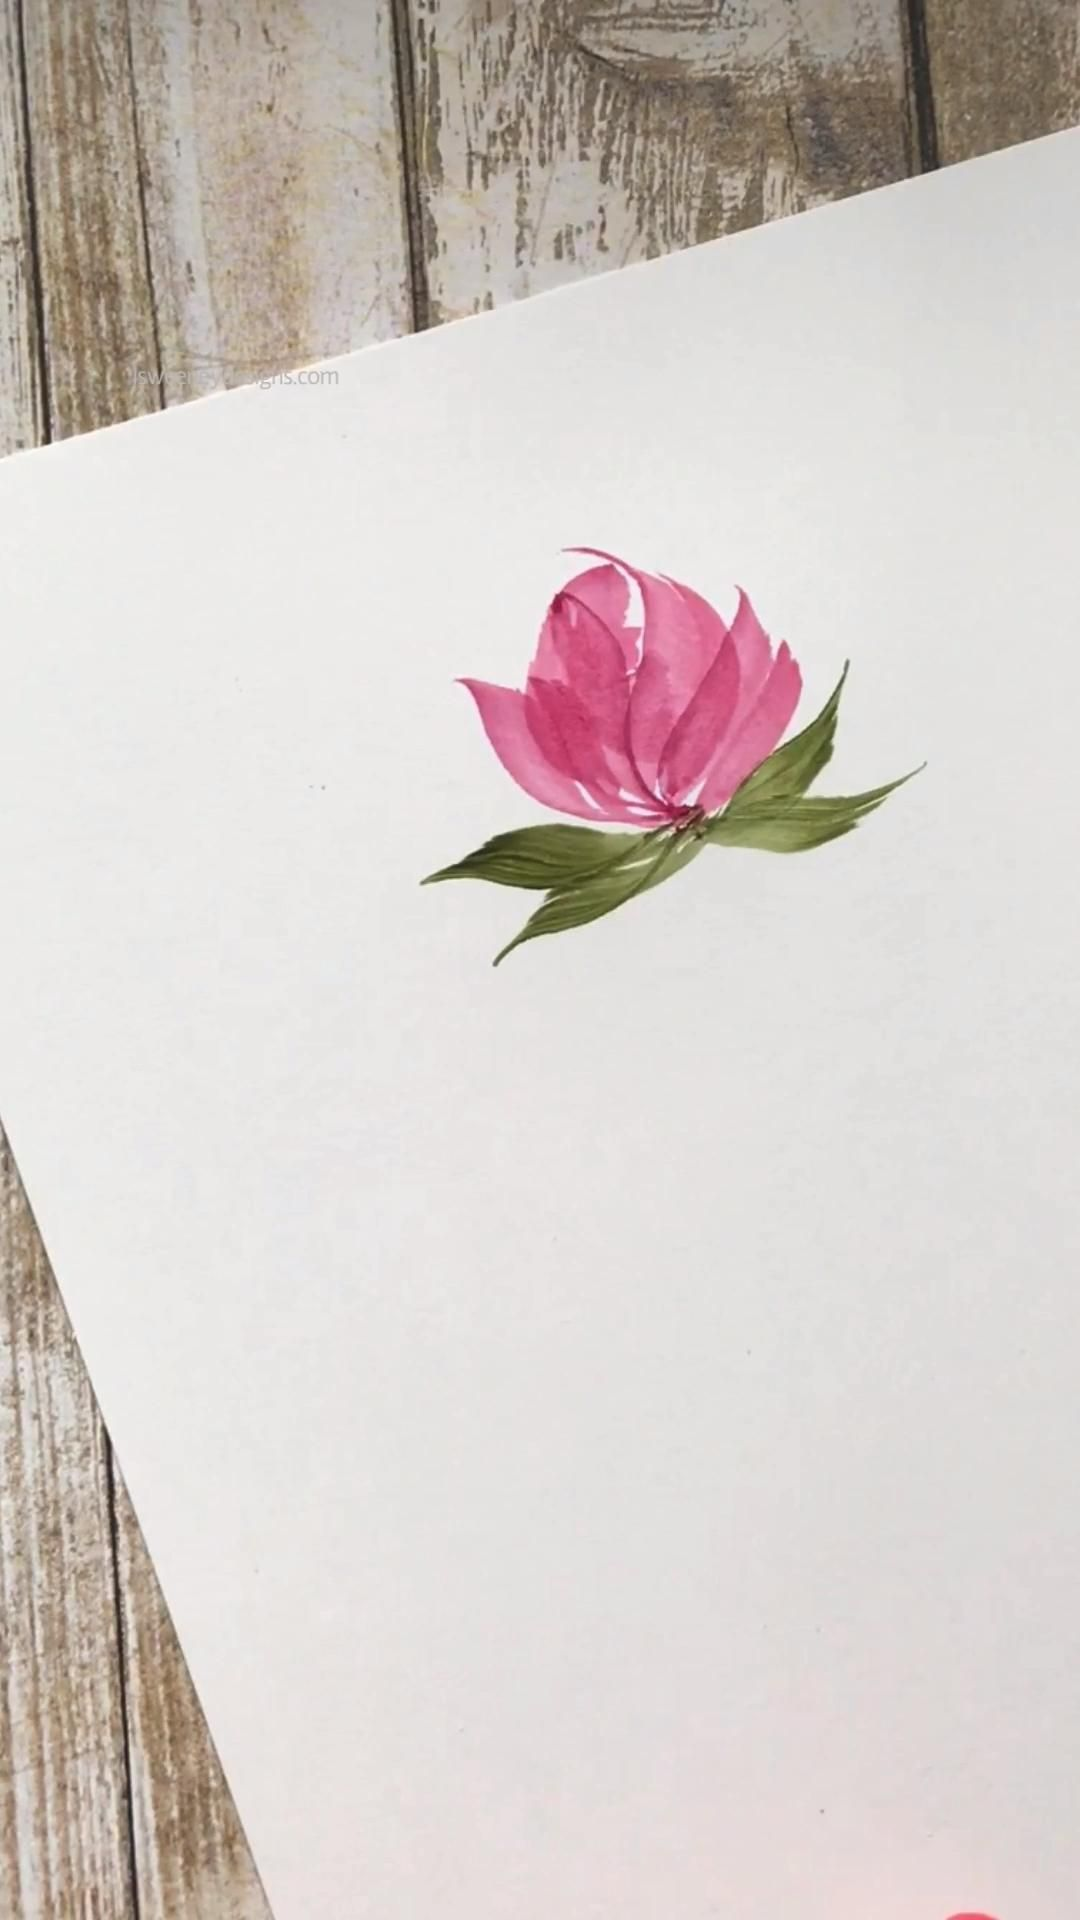 A quick floral blossom with a calligraphy stem